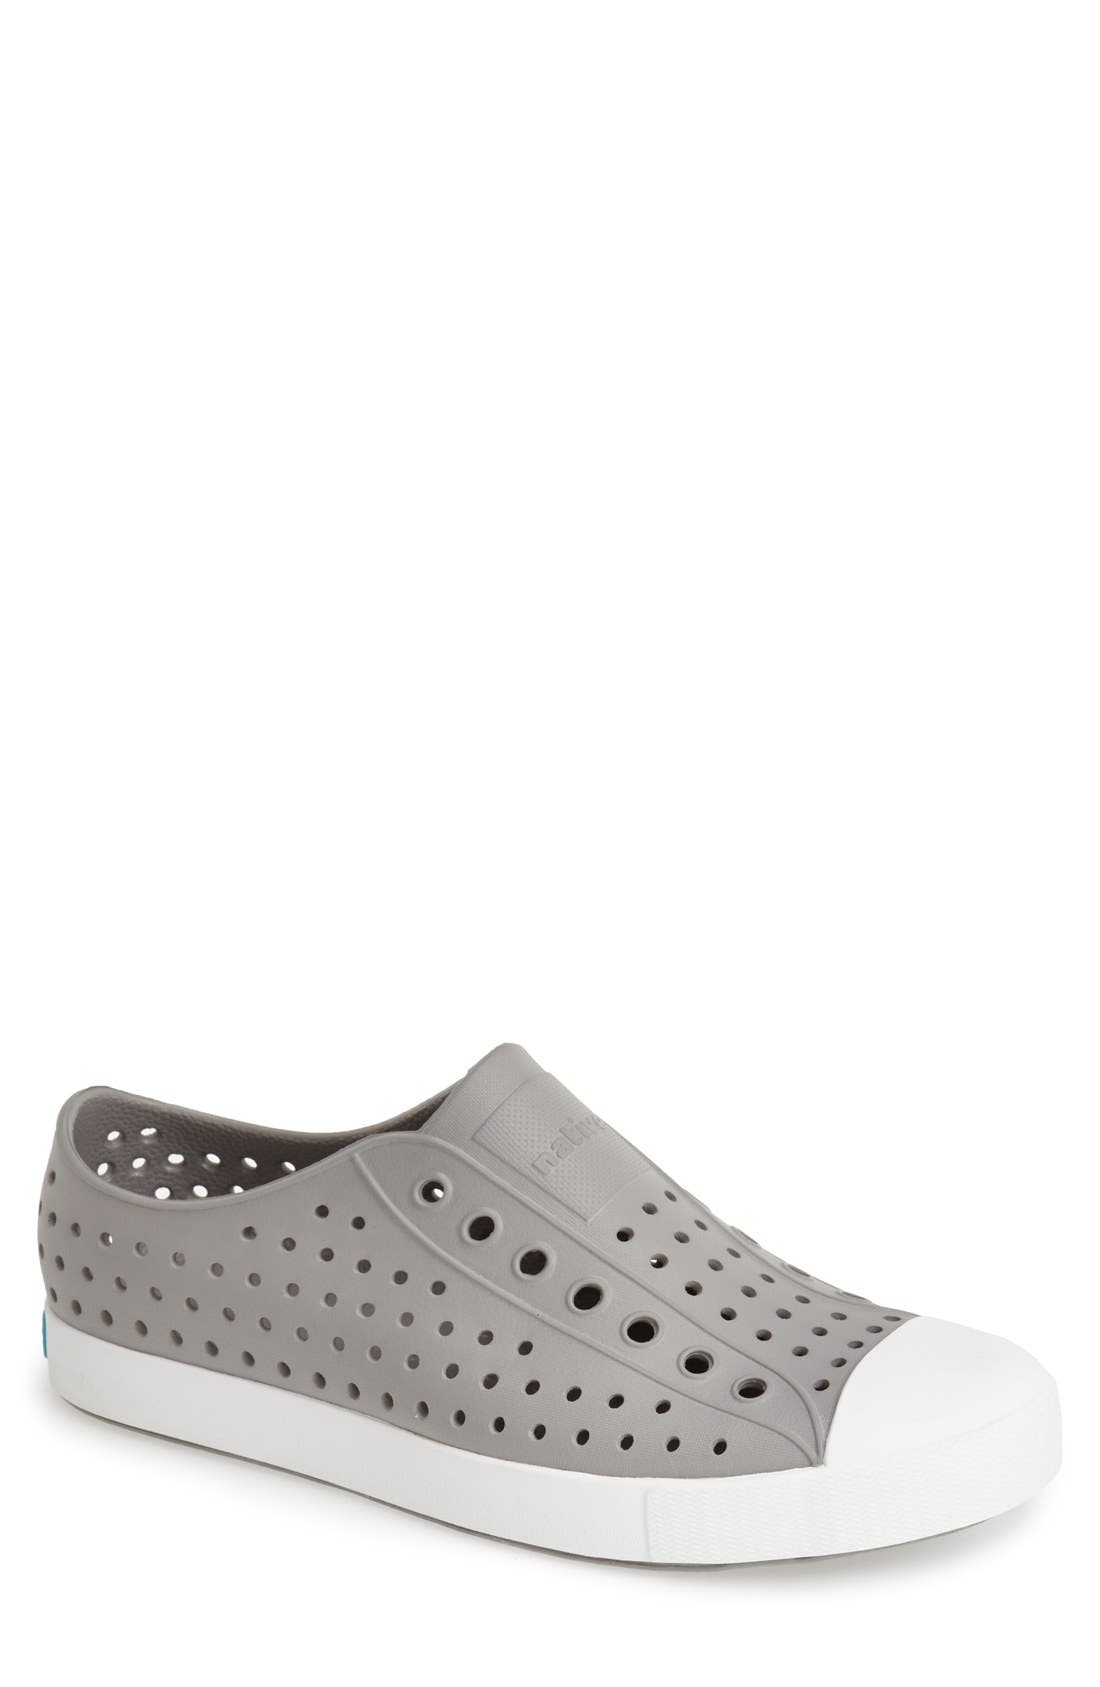 NATIVE SHOES, 'Jefferson' Slip-On, Main thumbnail 1, color, PIGEON GREY/ SHELL WHITE